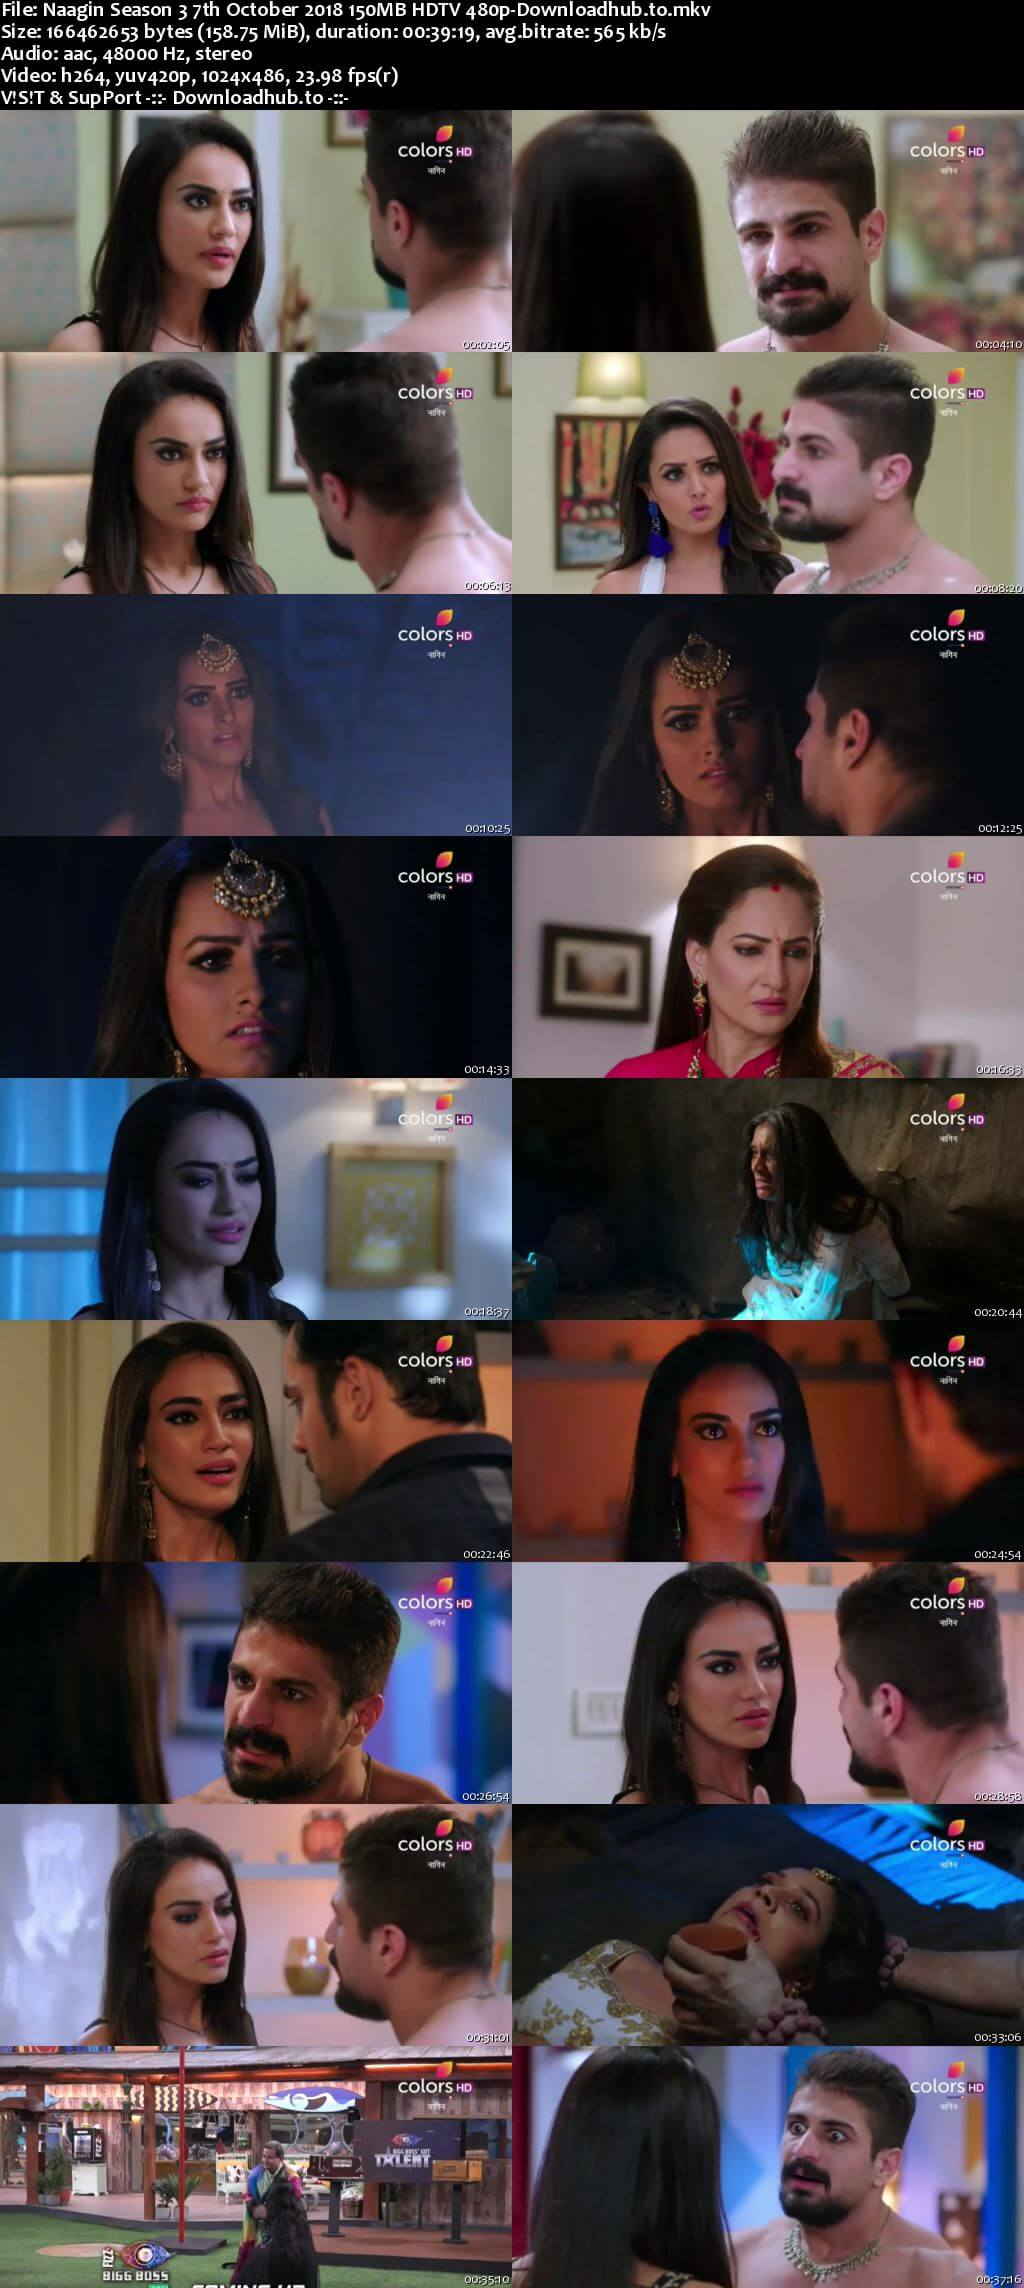 Naagin Season 3 07 October 2018 Episode 37 HDTV 480p